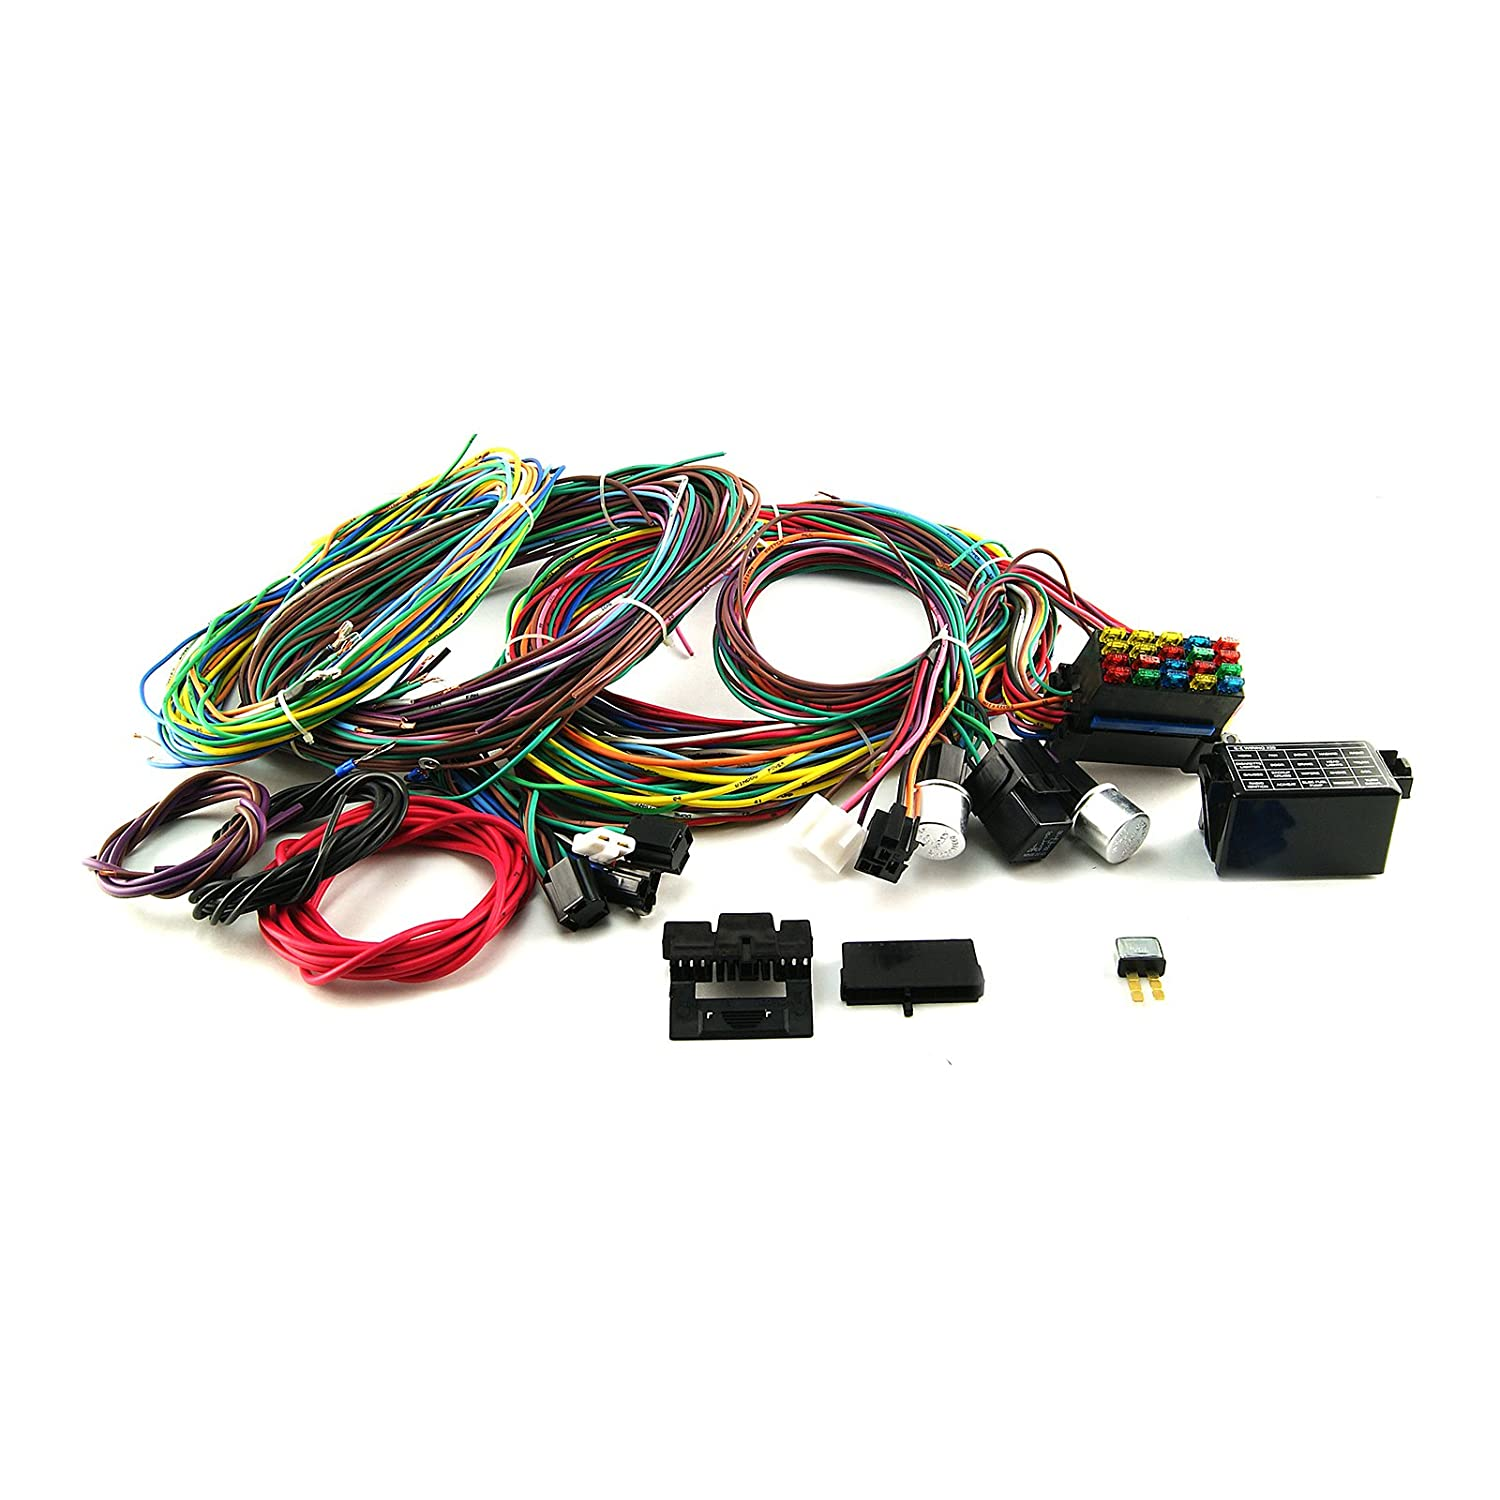 7125O1RnB8L._SL1500_ wh 1001 wiring harness wh1001 wire harness \u2022 wiring diagram  at bakdesigns.co